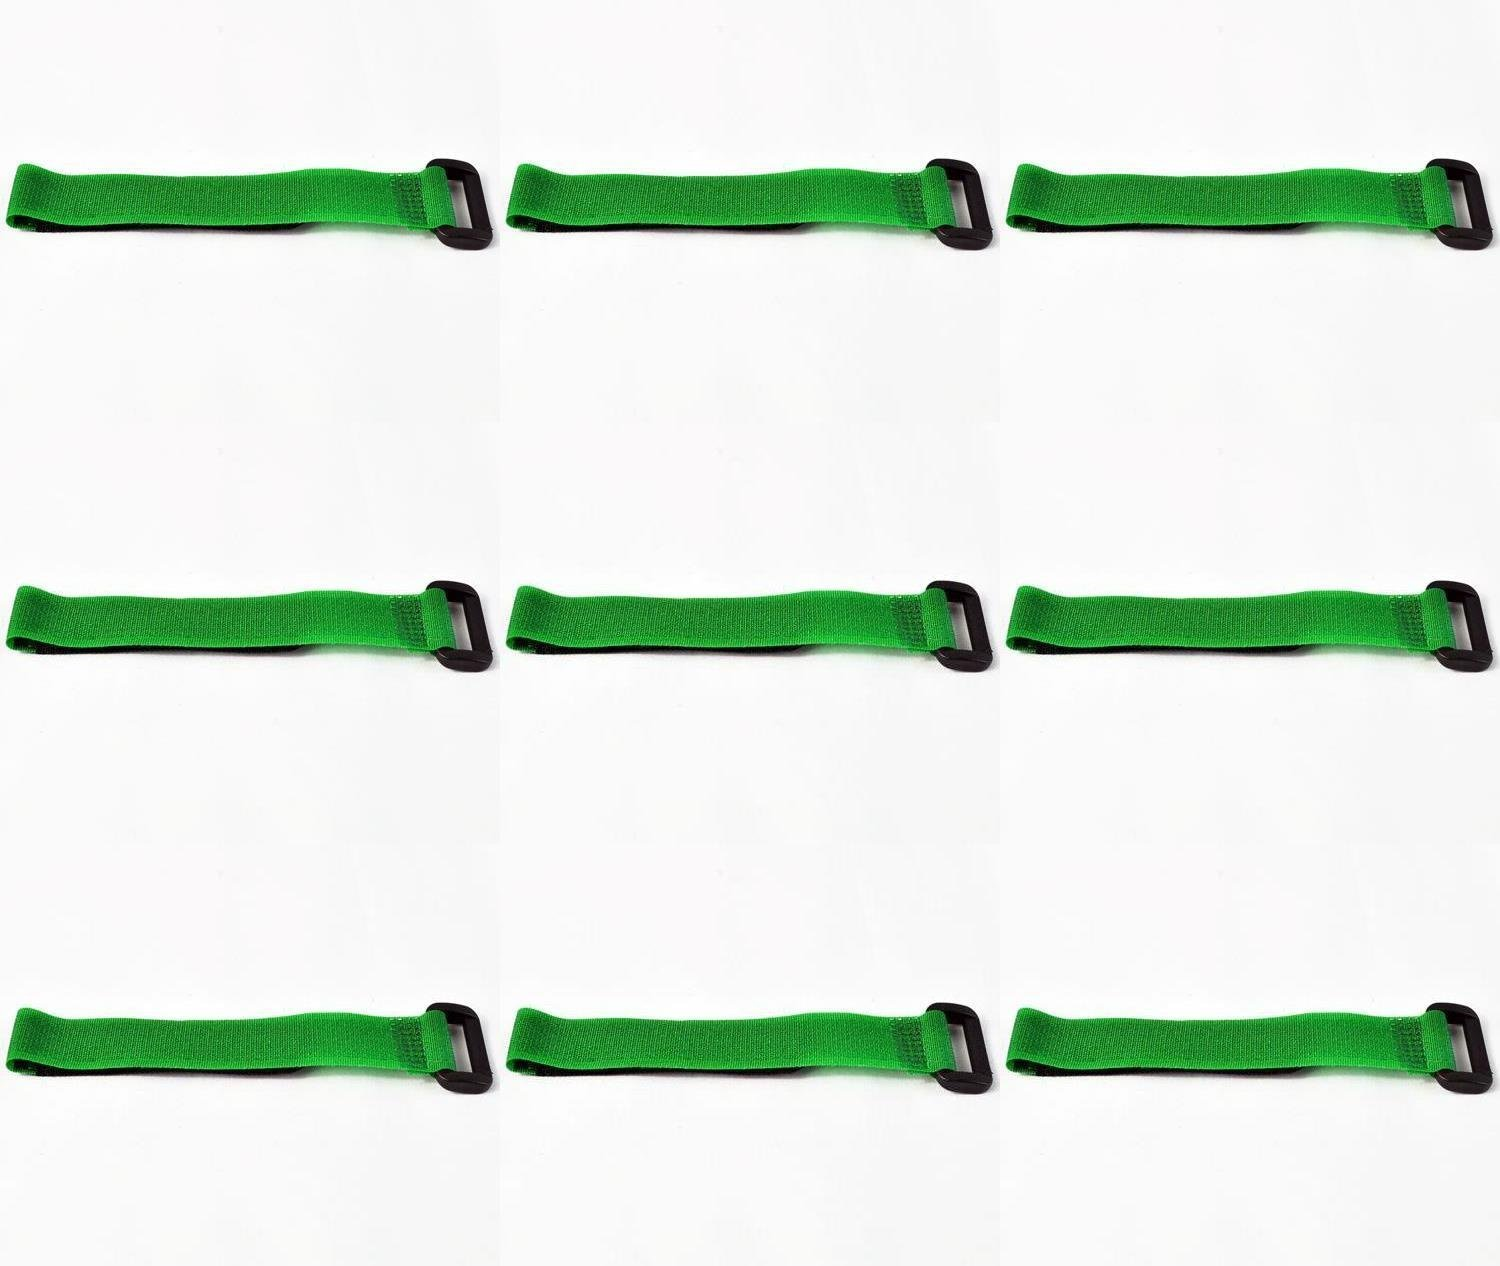 saludable 9 x Quantity of Walkera Walkera Walkera Runner 250 (R) Advanced GPS Quadcopter Drone 20mm Green Battery Strap 250-Z-27 Velcro Wrap Quadcopter Drone Part - FAST FREE SHIPPING FROM Orlando, Florida USA  ganancia cero